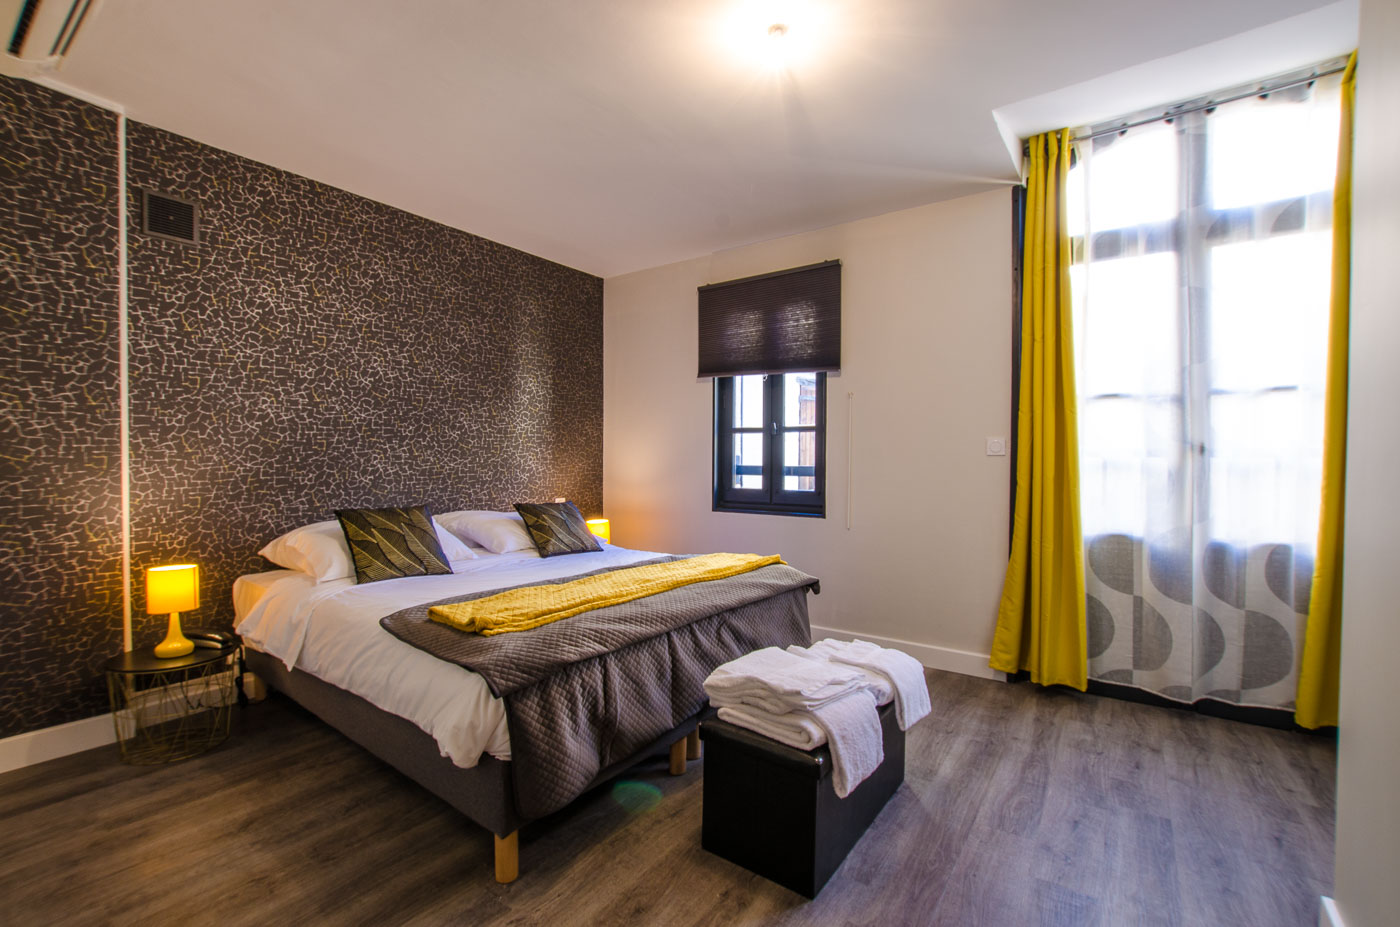 hotel-atypic-8617